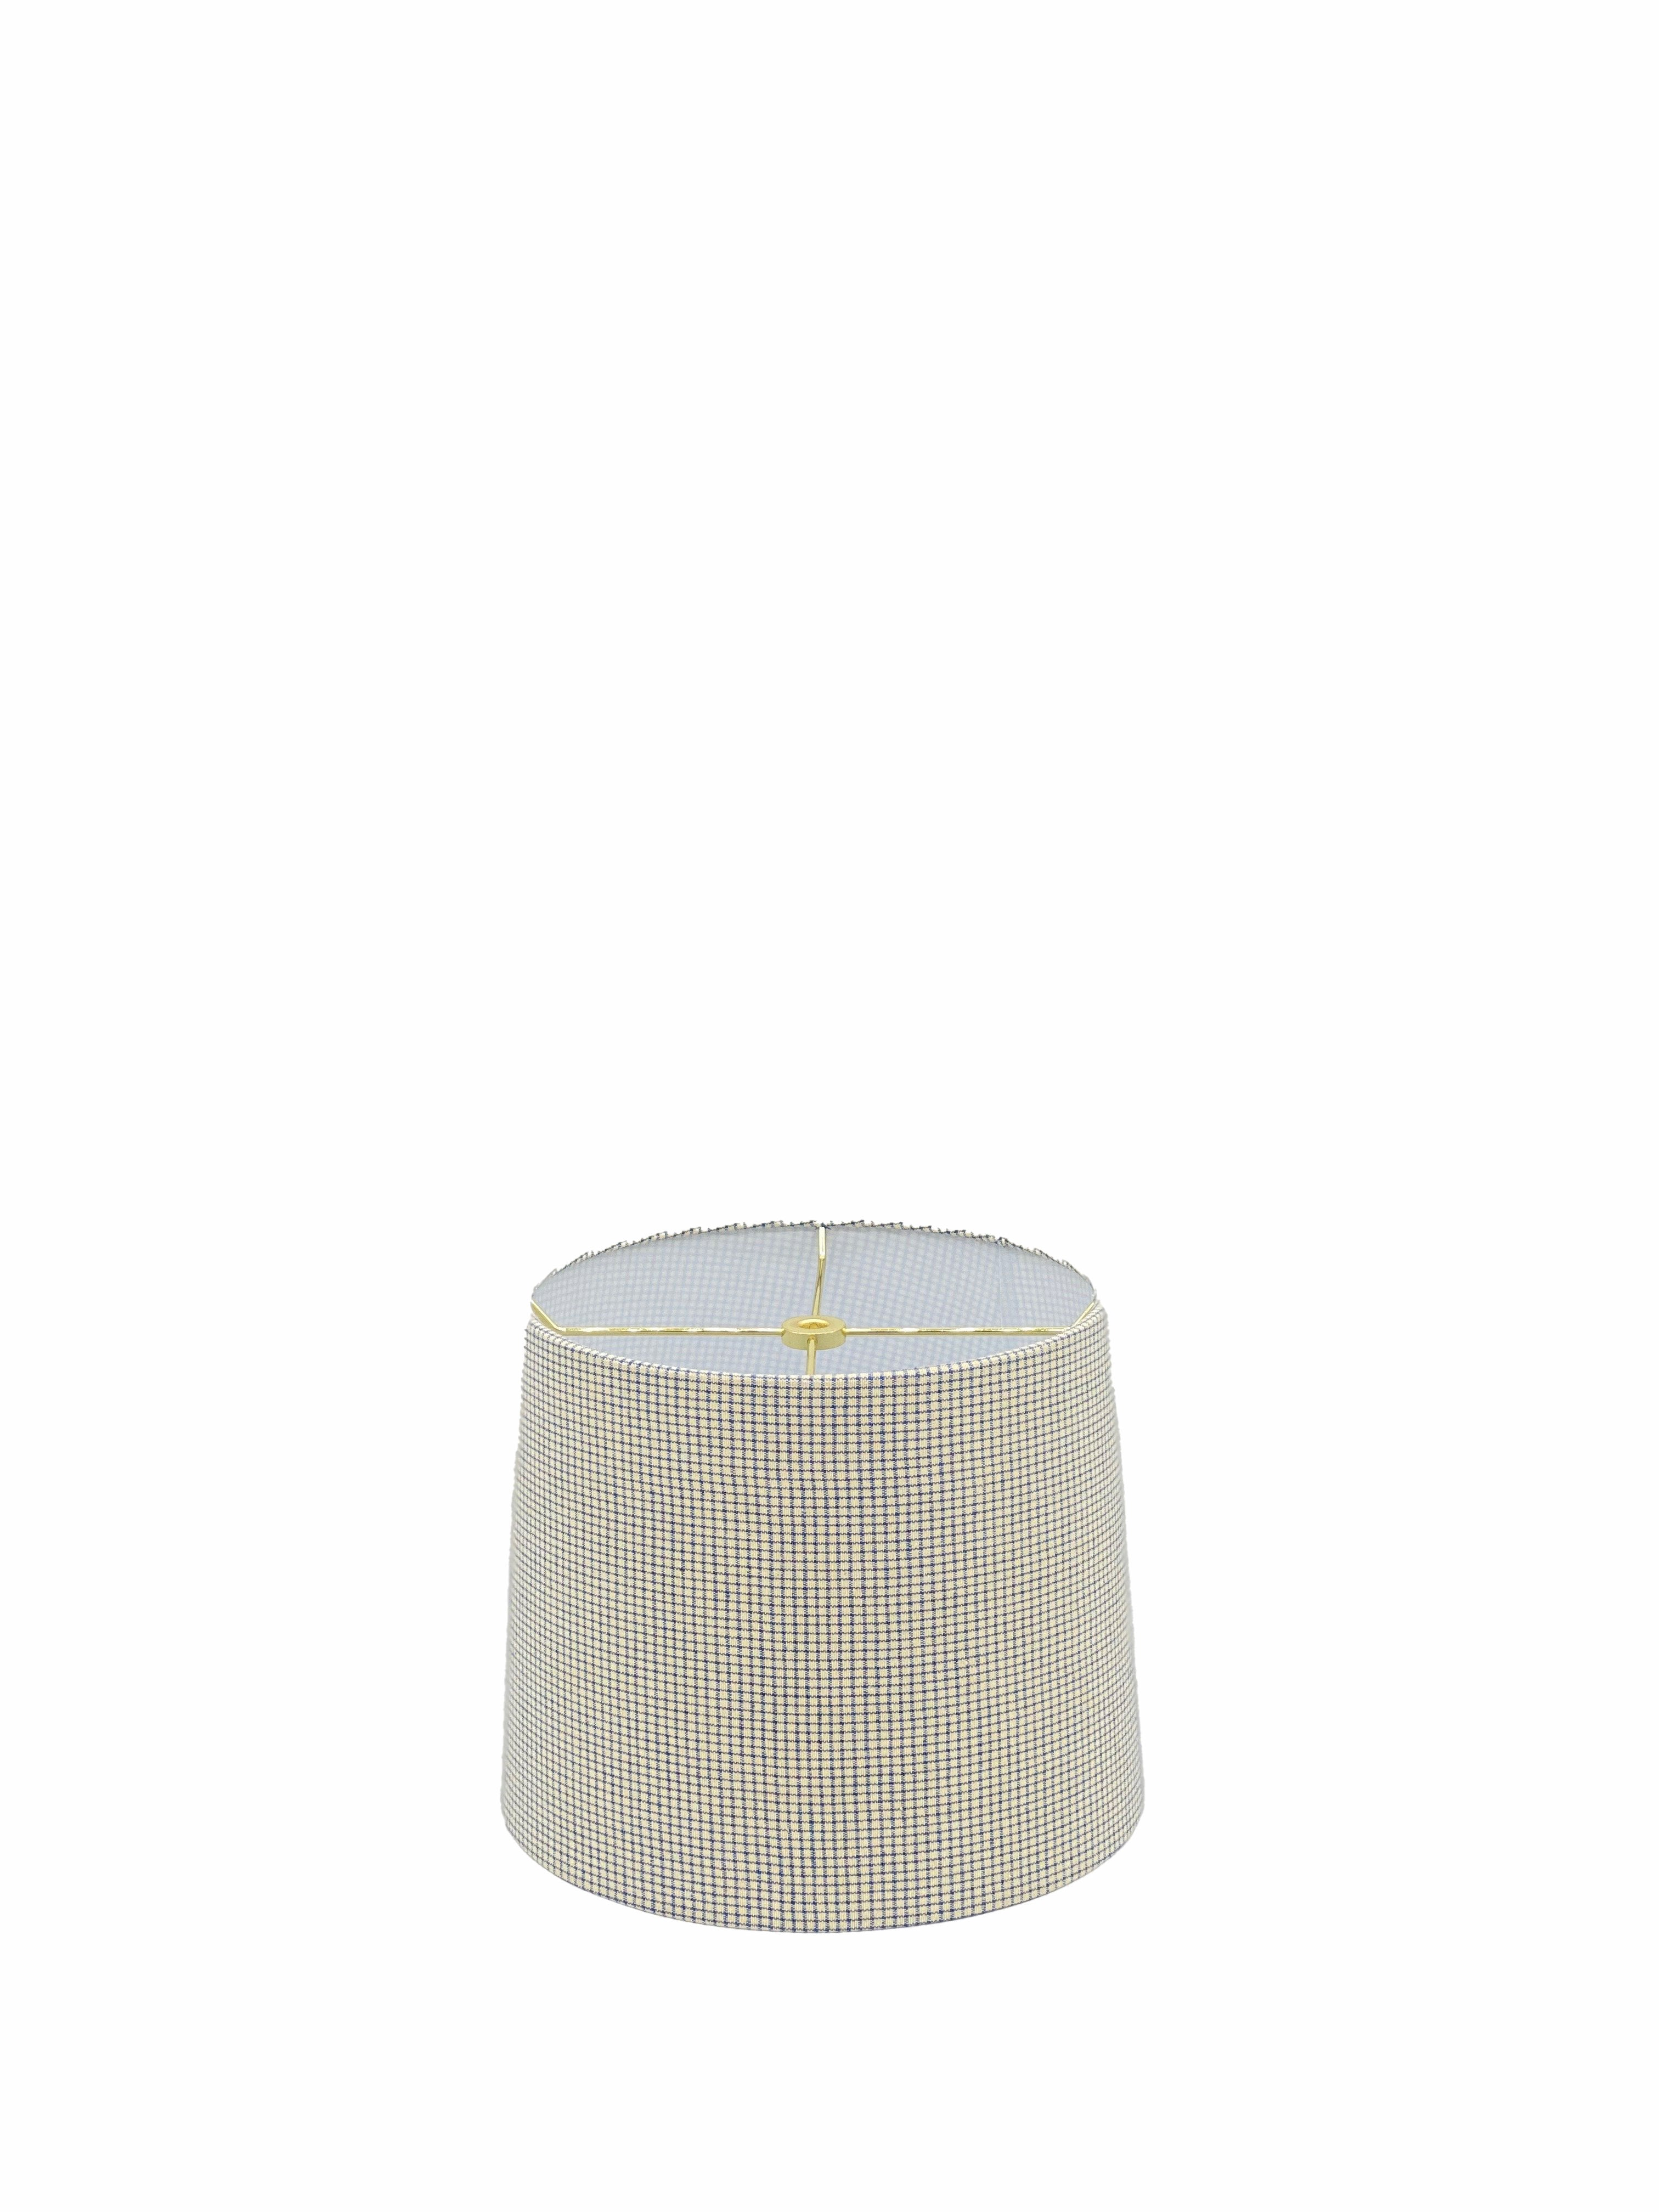 Drum - Blue/ Neutral Check Lampshade